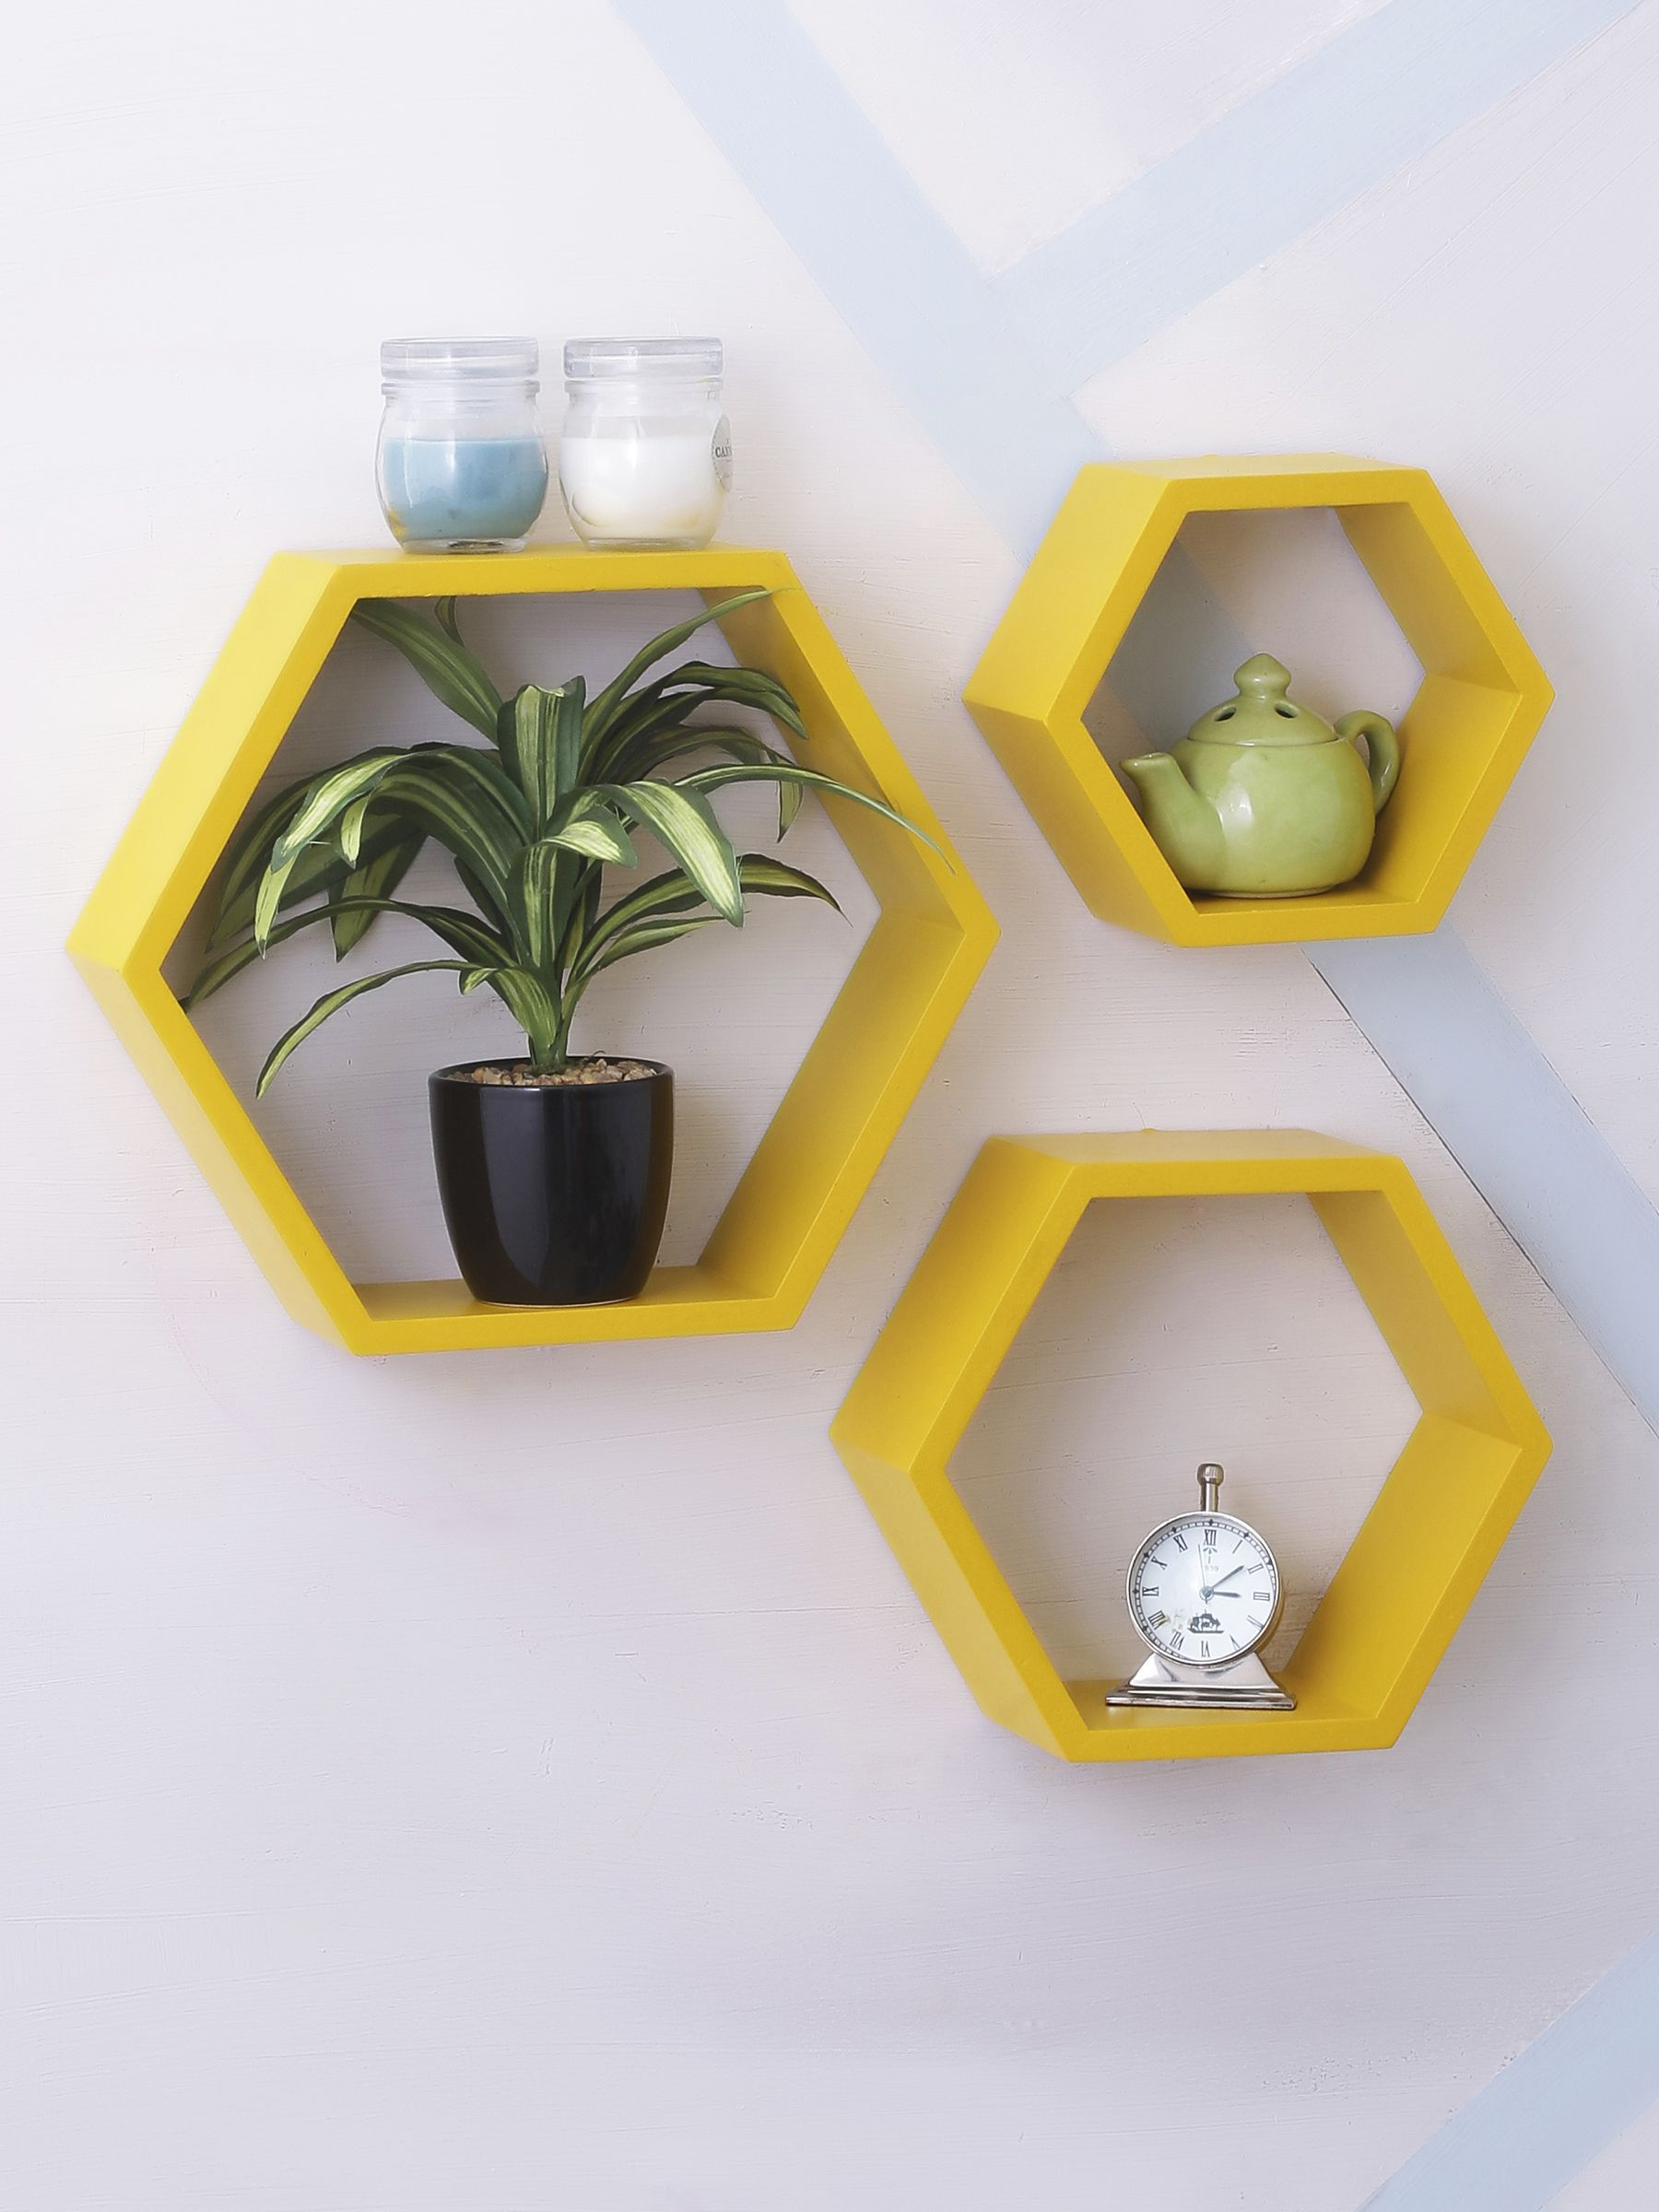 Home Sparkle MDF Set of 3 Hexagon Wall Shelves For Wall Décor -Suitable For Living Room/Bed Room (Designed By Craftsman)